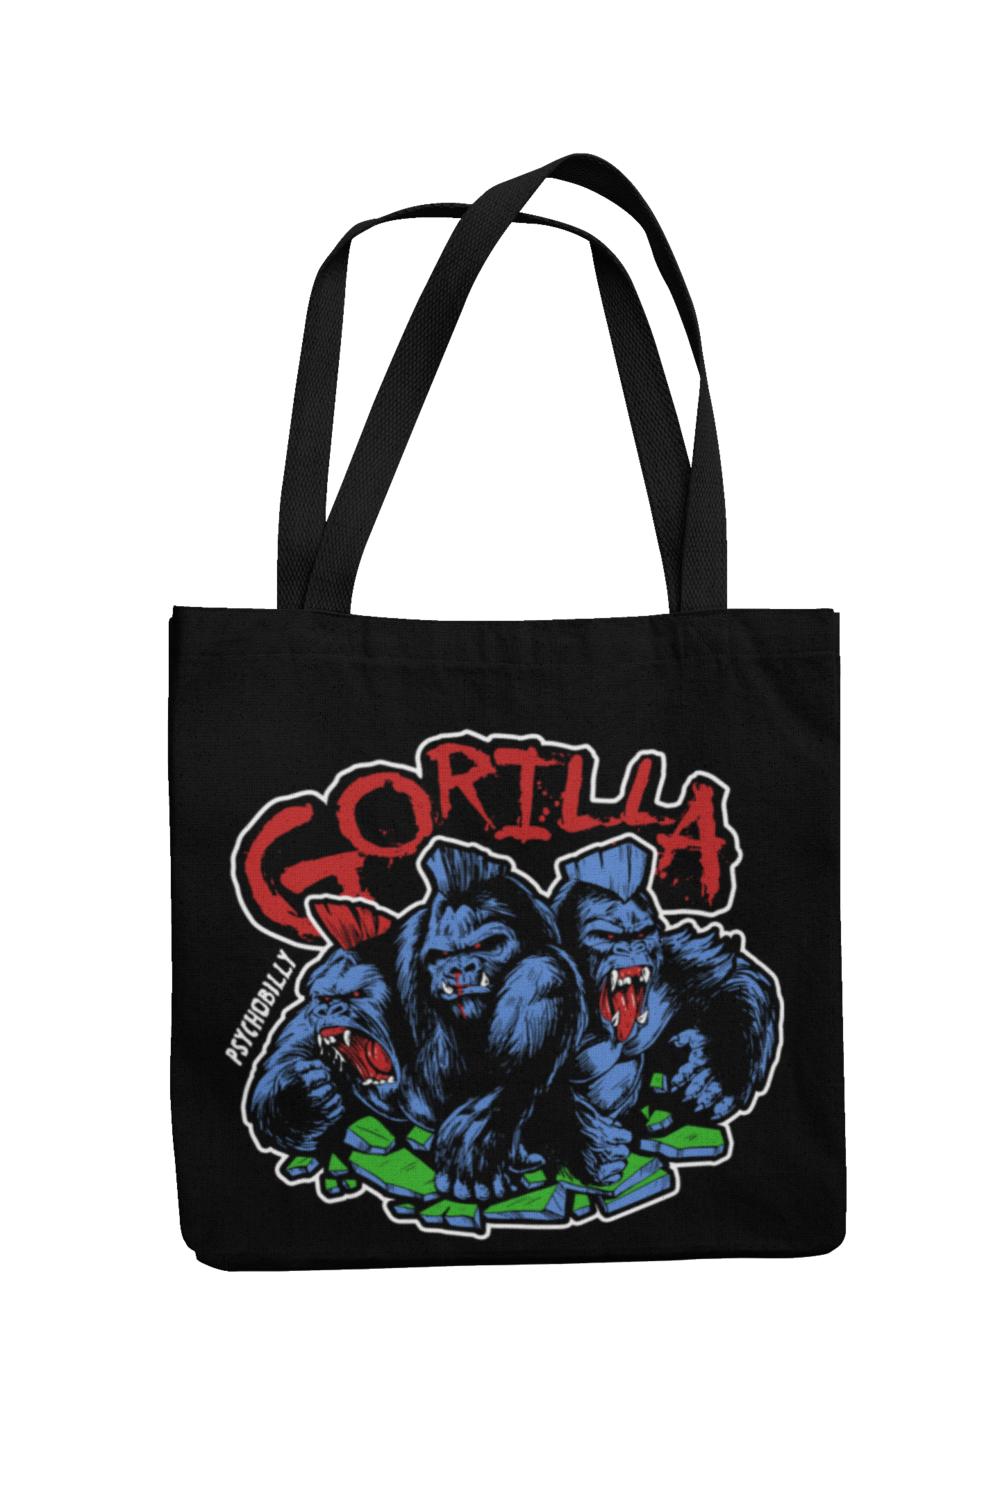 GORILLA 4 Colours logo Cotton Bag